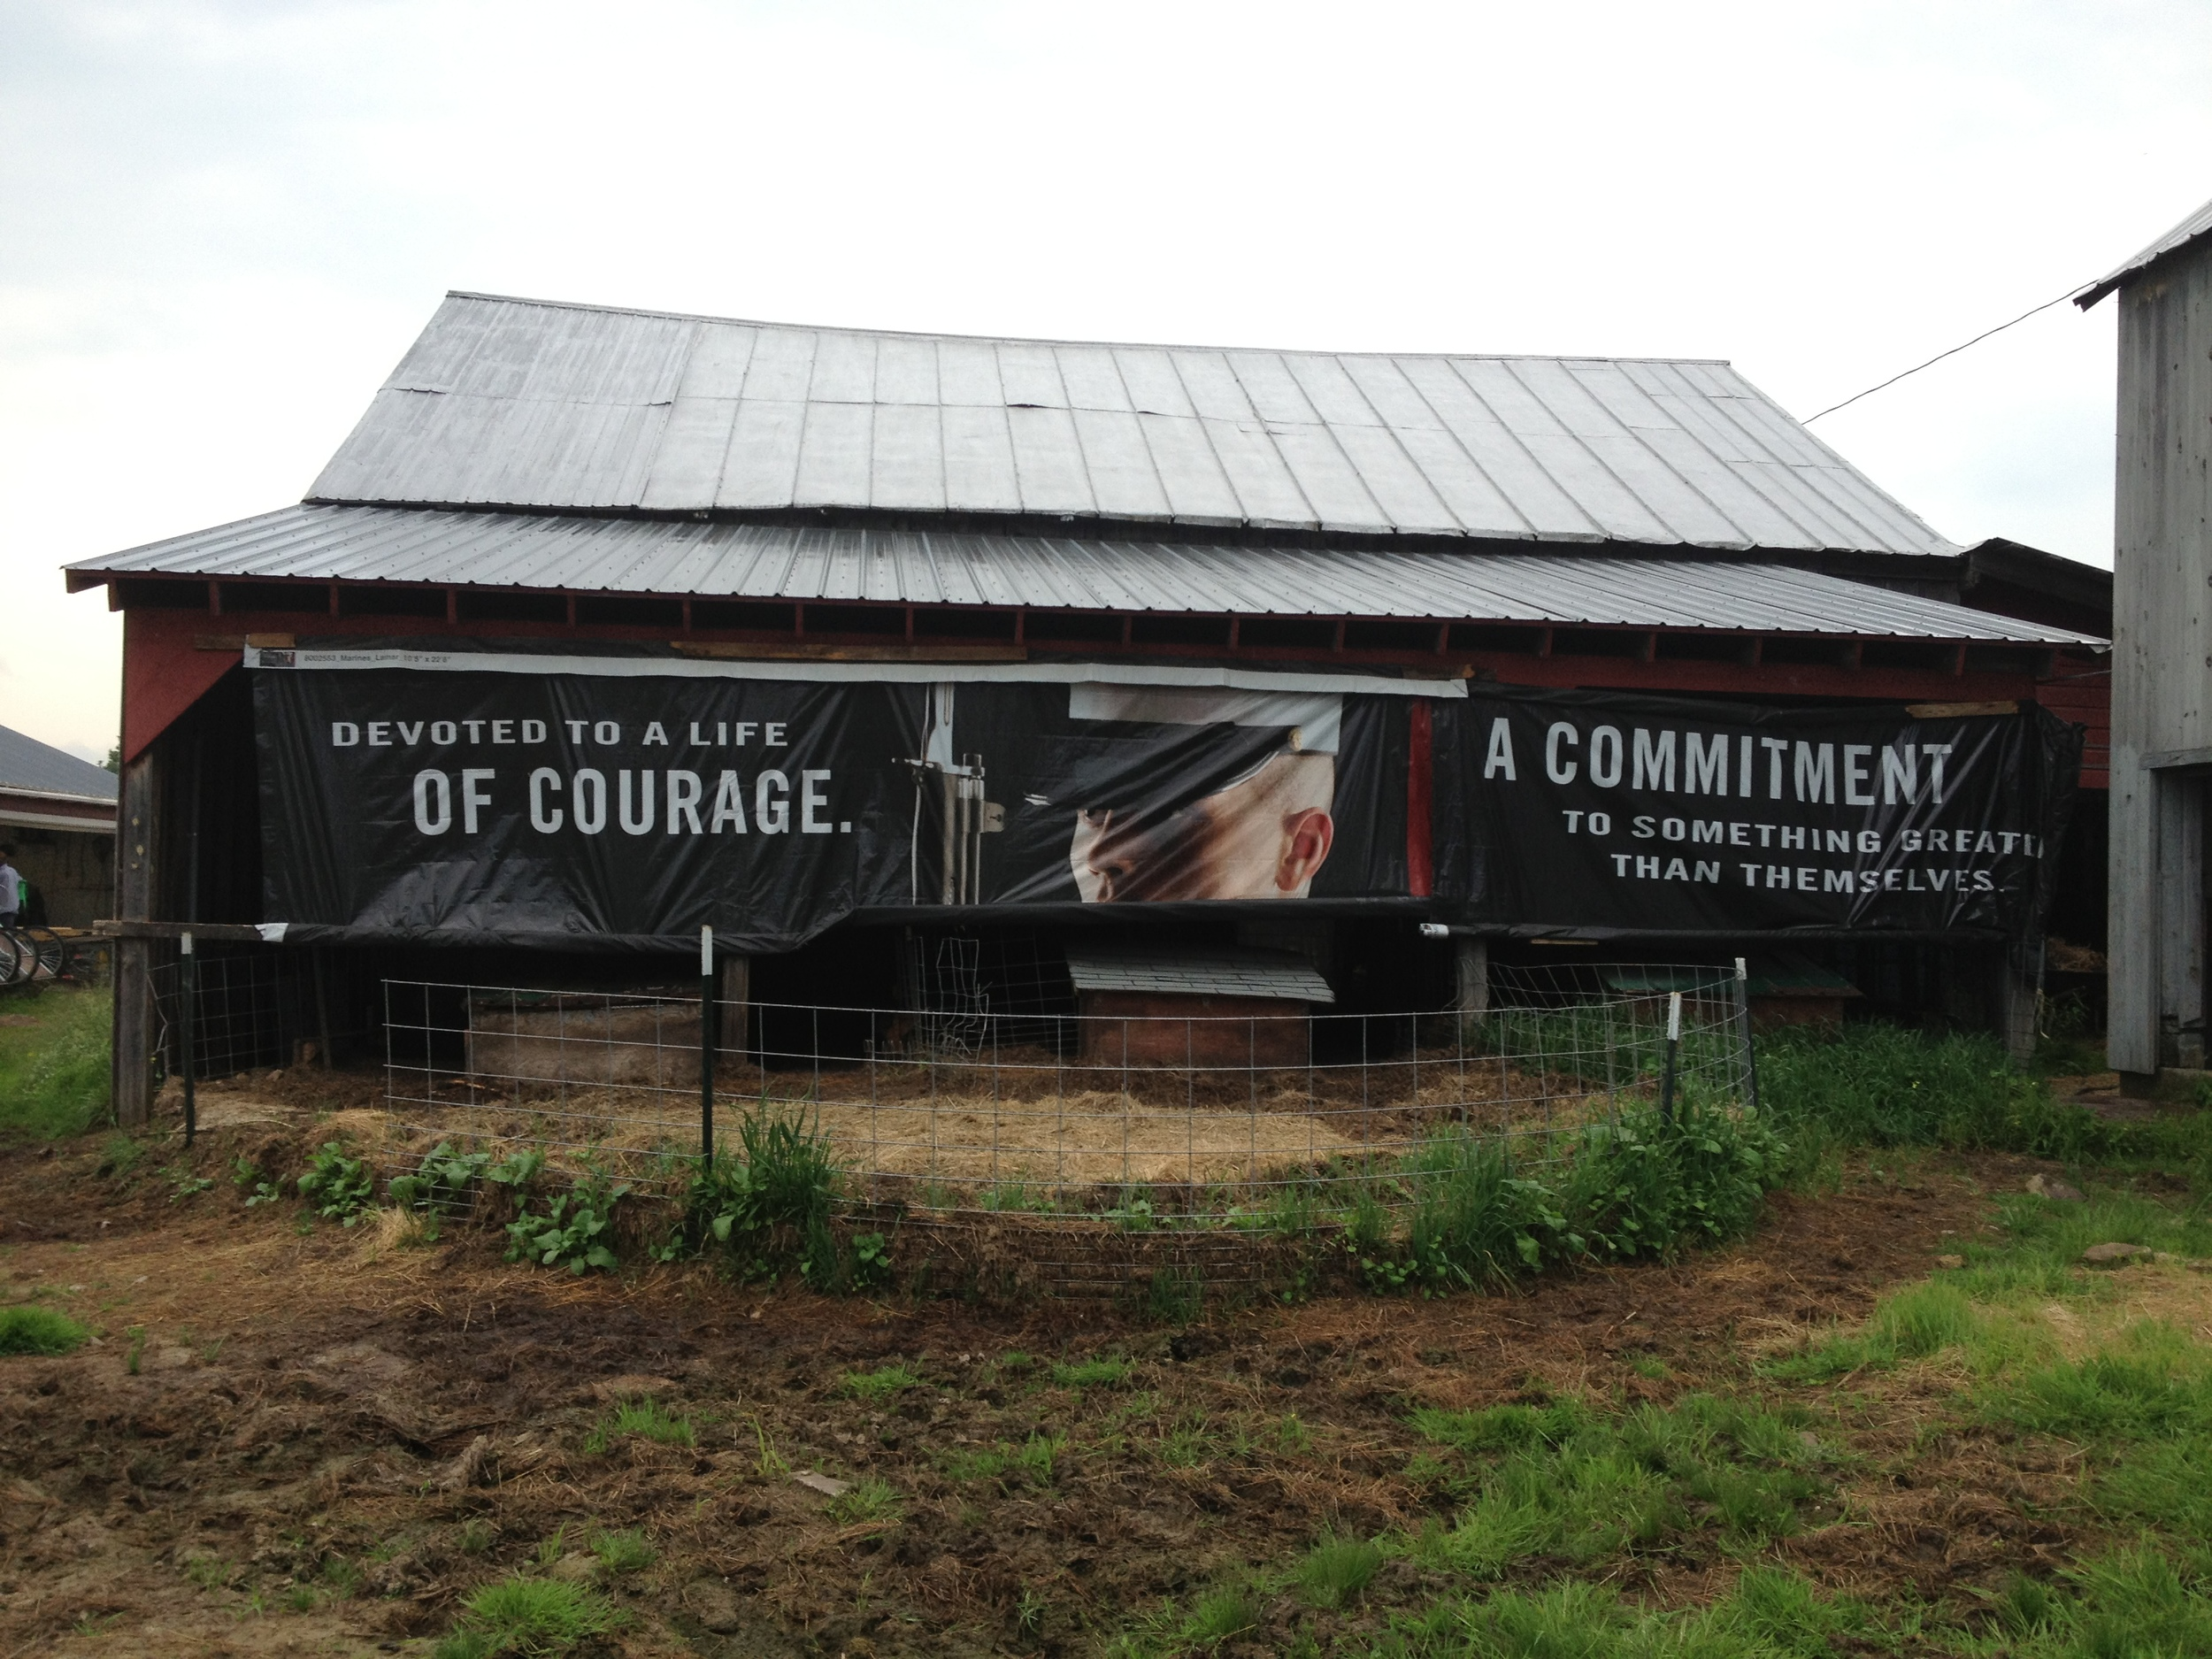 Another great example of creative recycling - a vinyl Marines banner provides some extra cover on an open-sided barn.